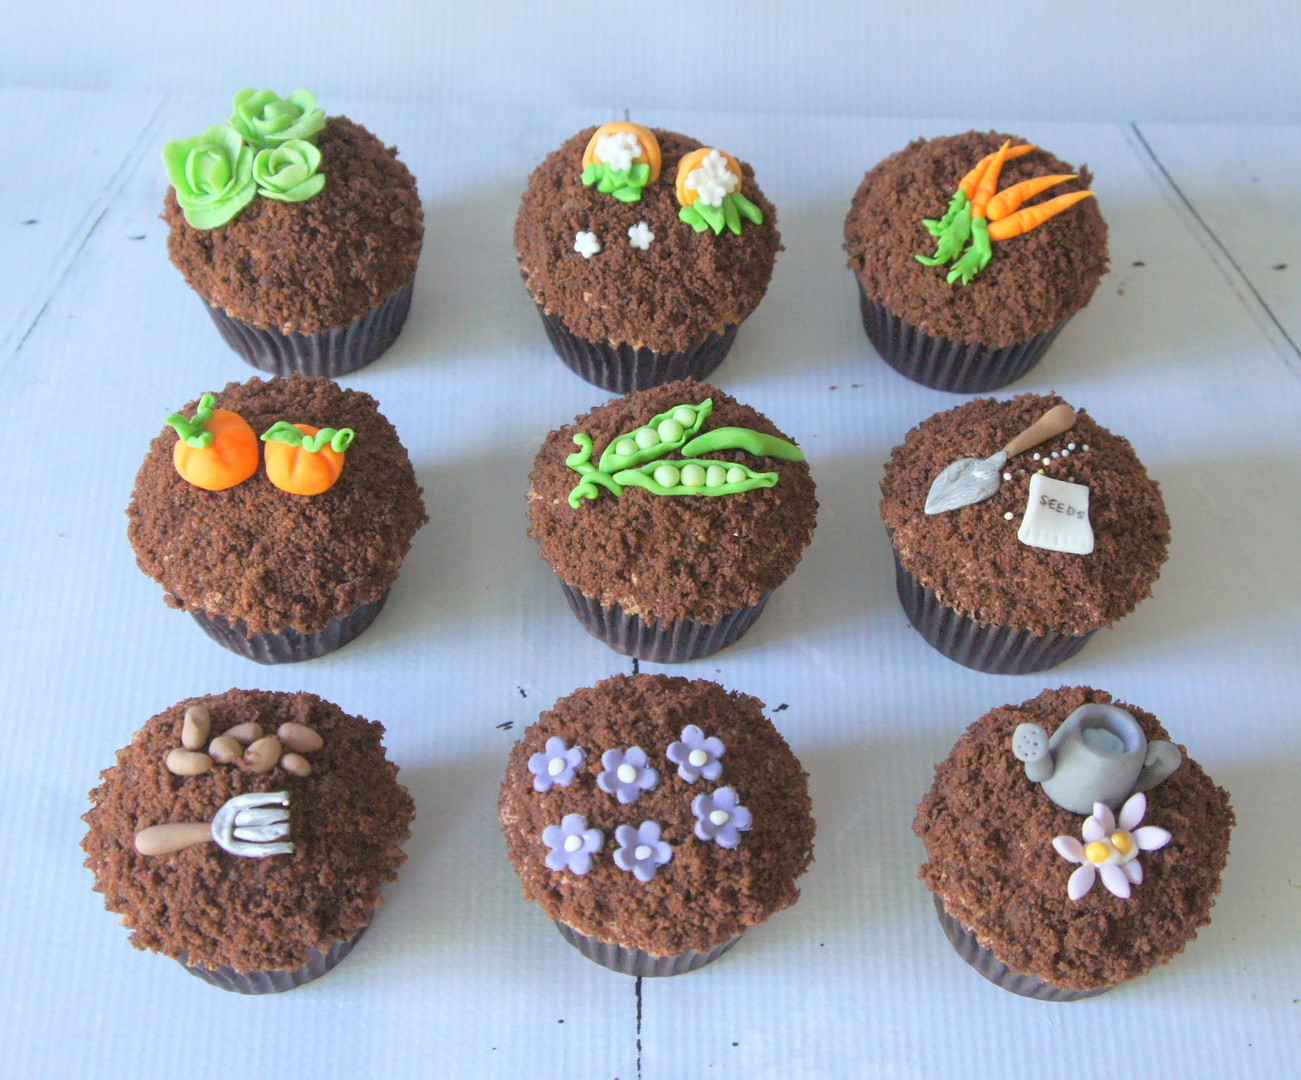 Garden Patch Cupcakes with Soil